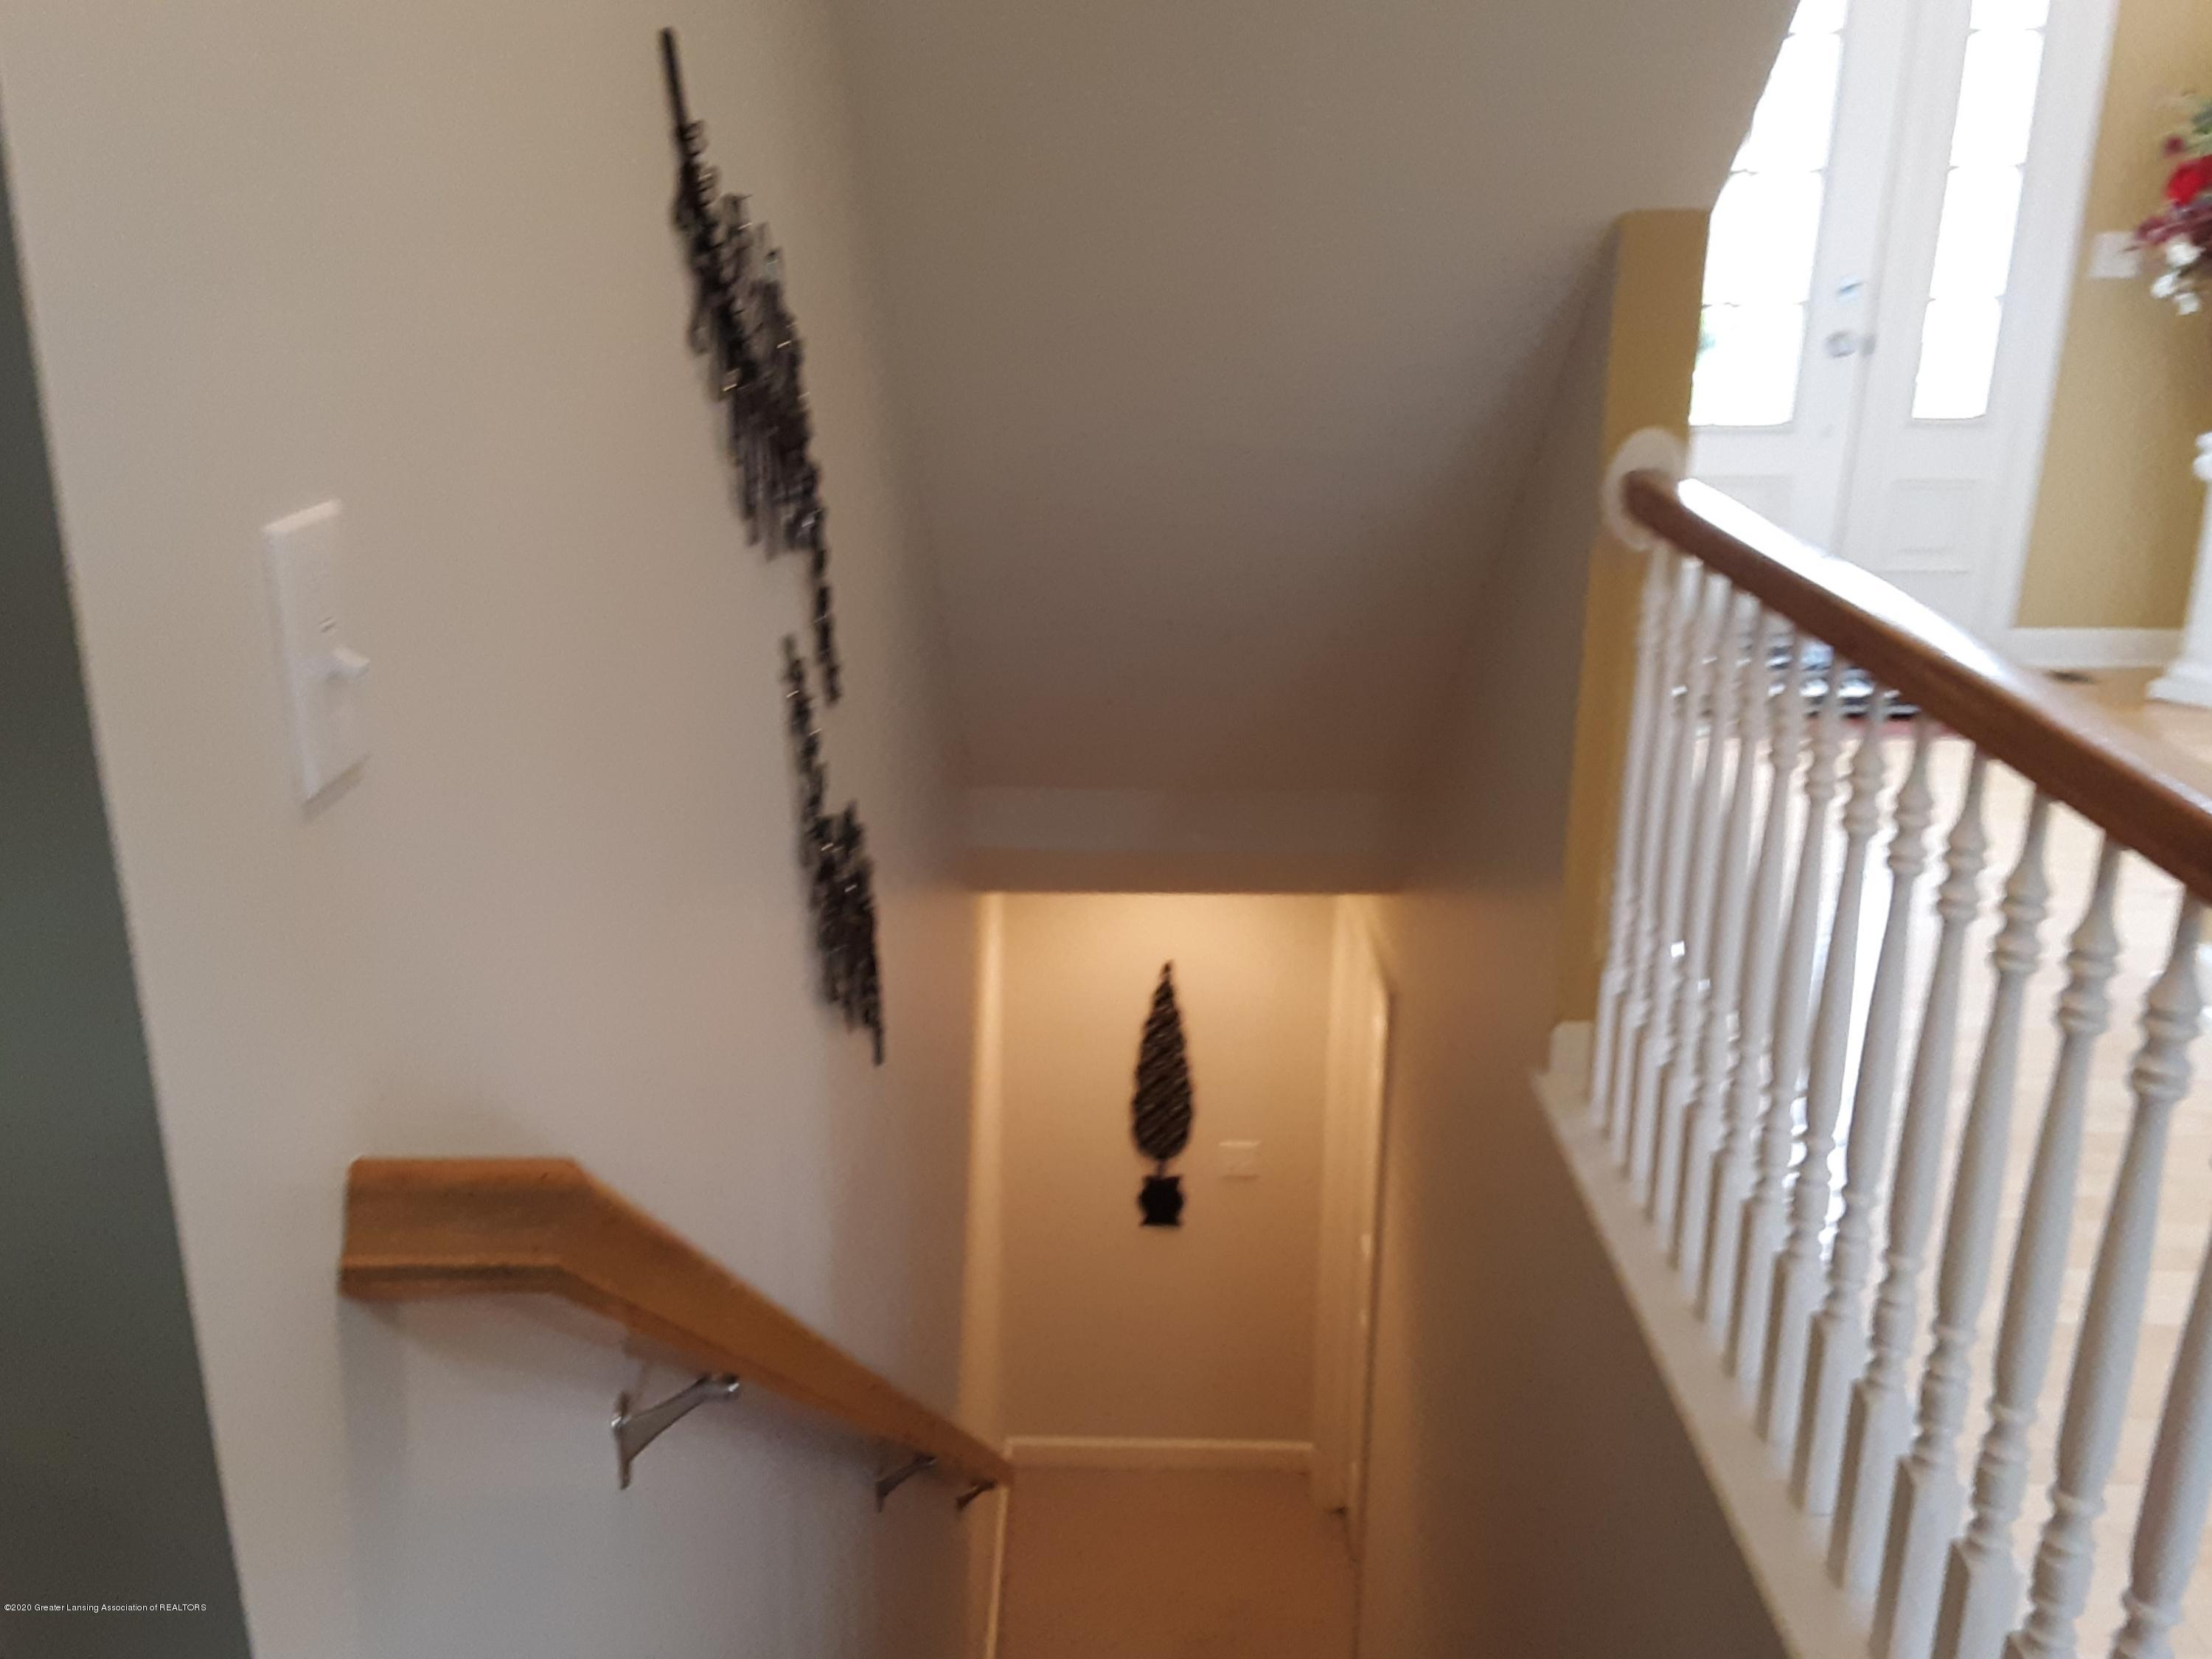 13142 Blaisdell Dr - 24. Stairs to basement - 26